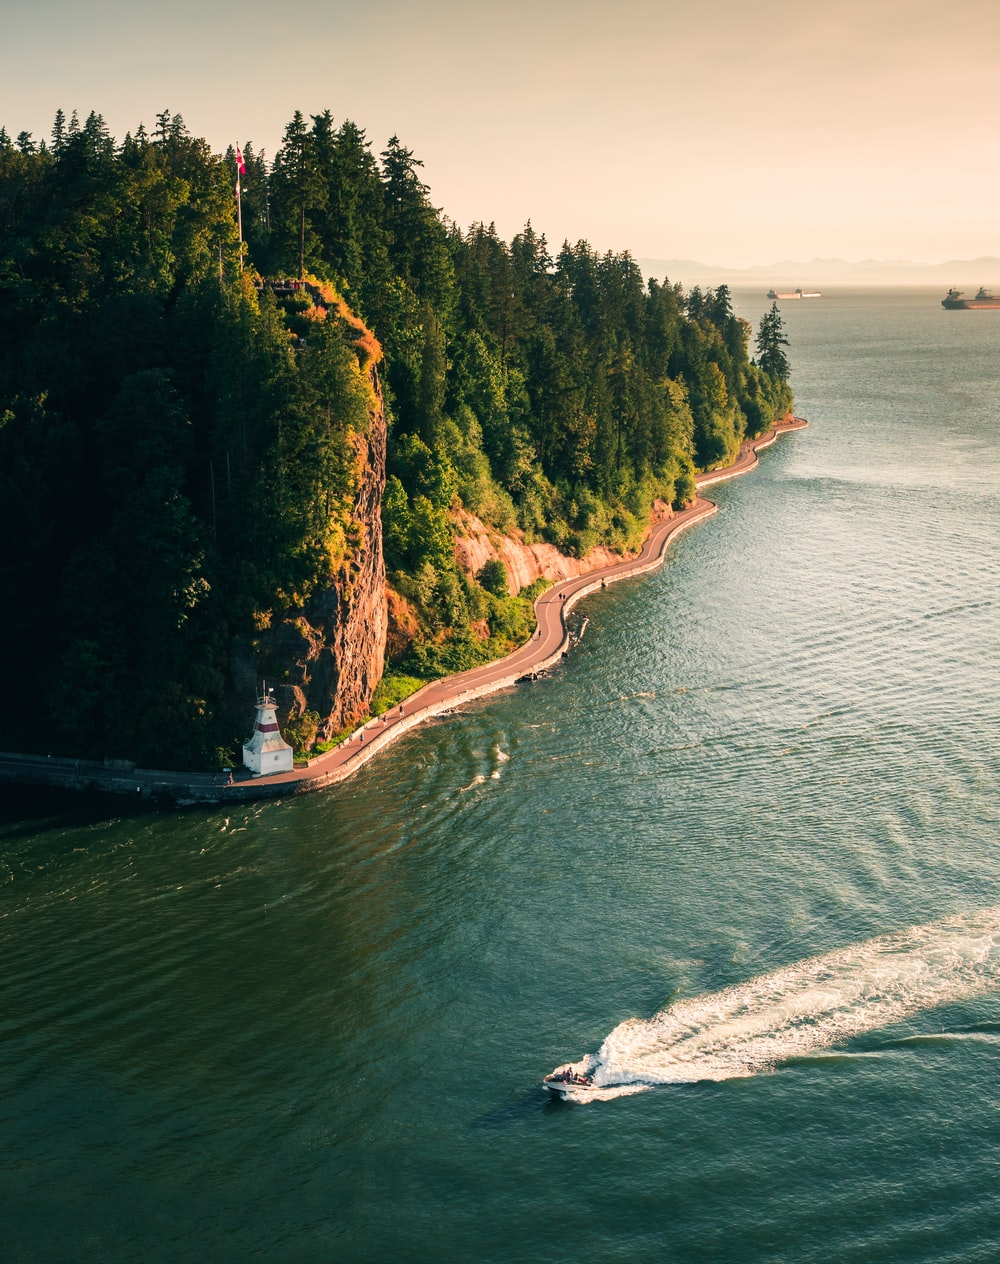 boat on water near cliff